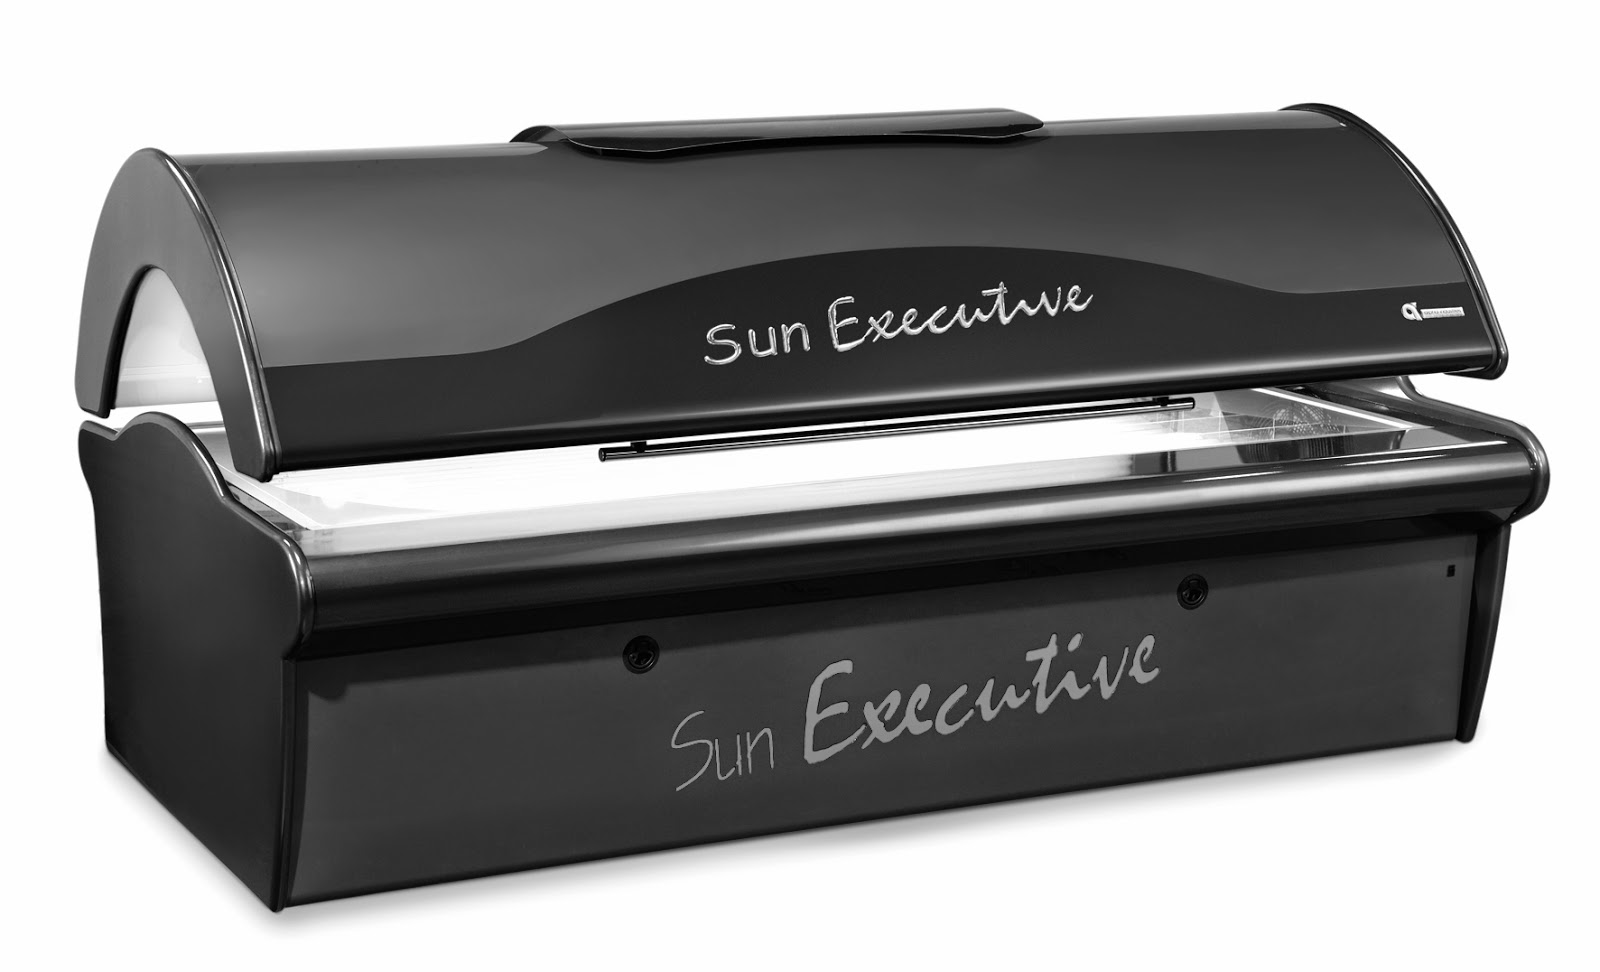 SE1 - Sunbed - Sun Executive combination - 46 tubes